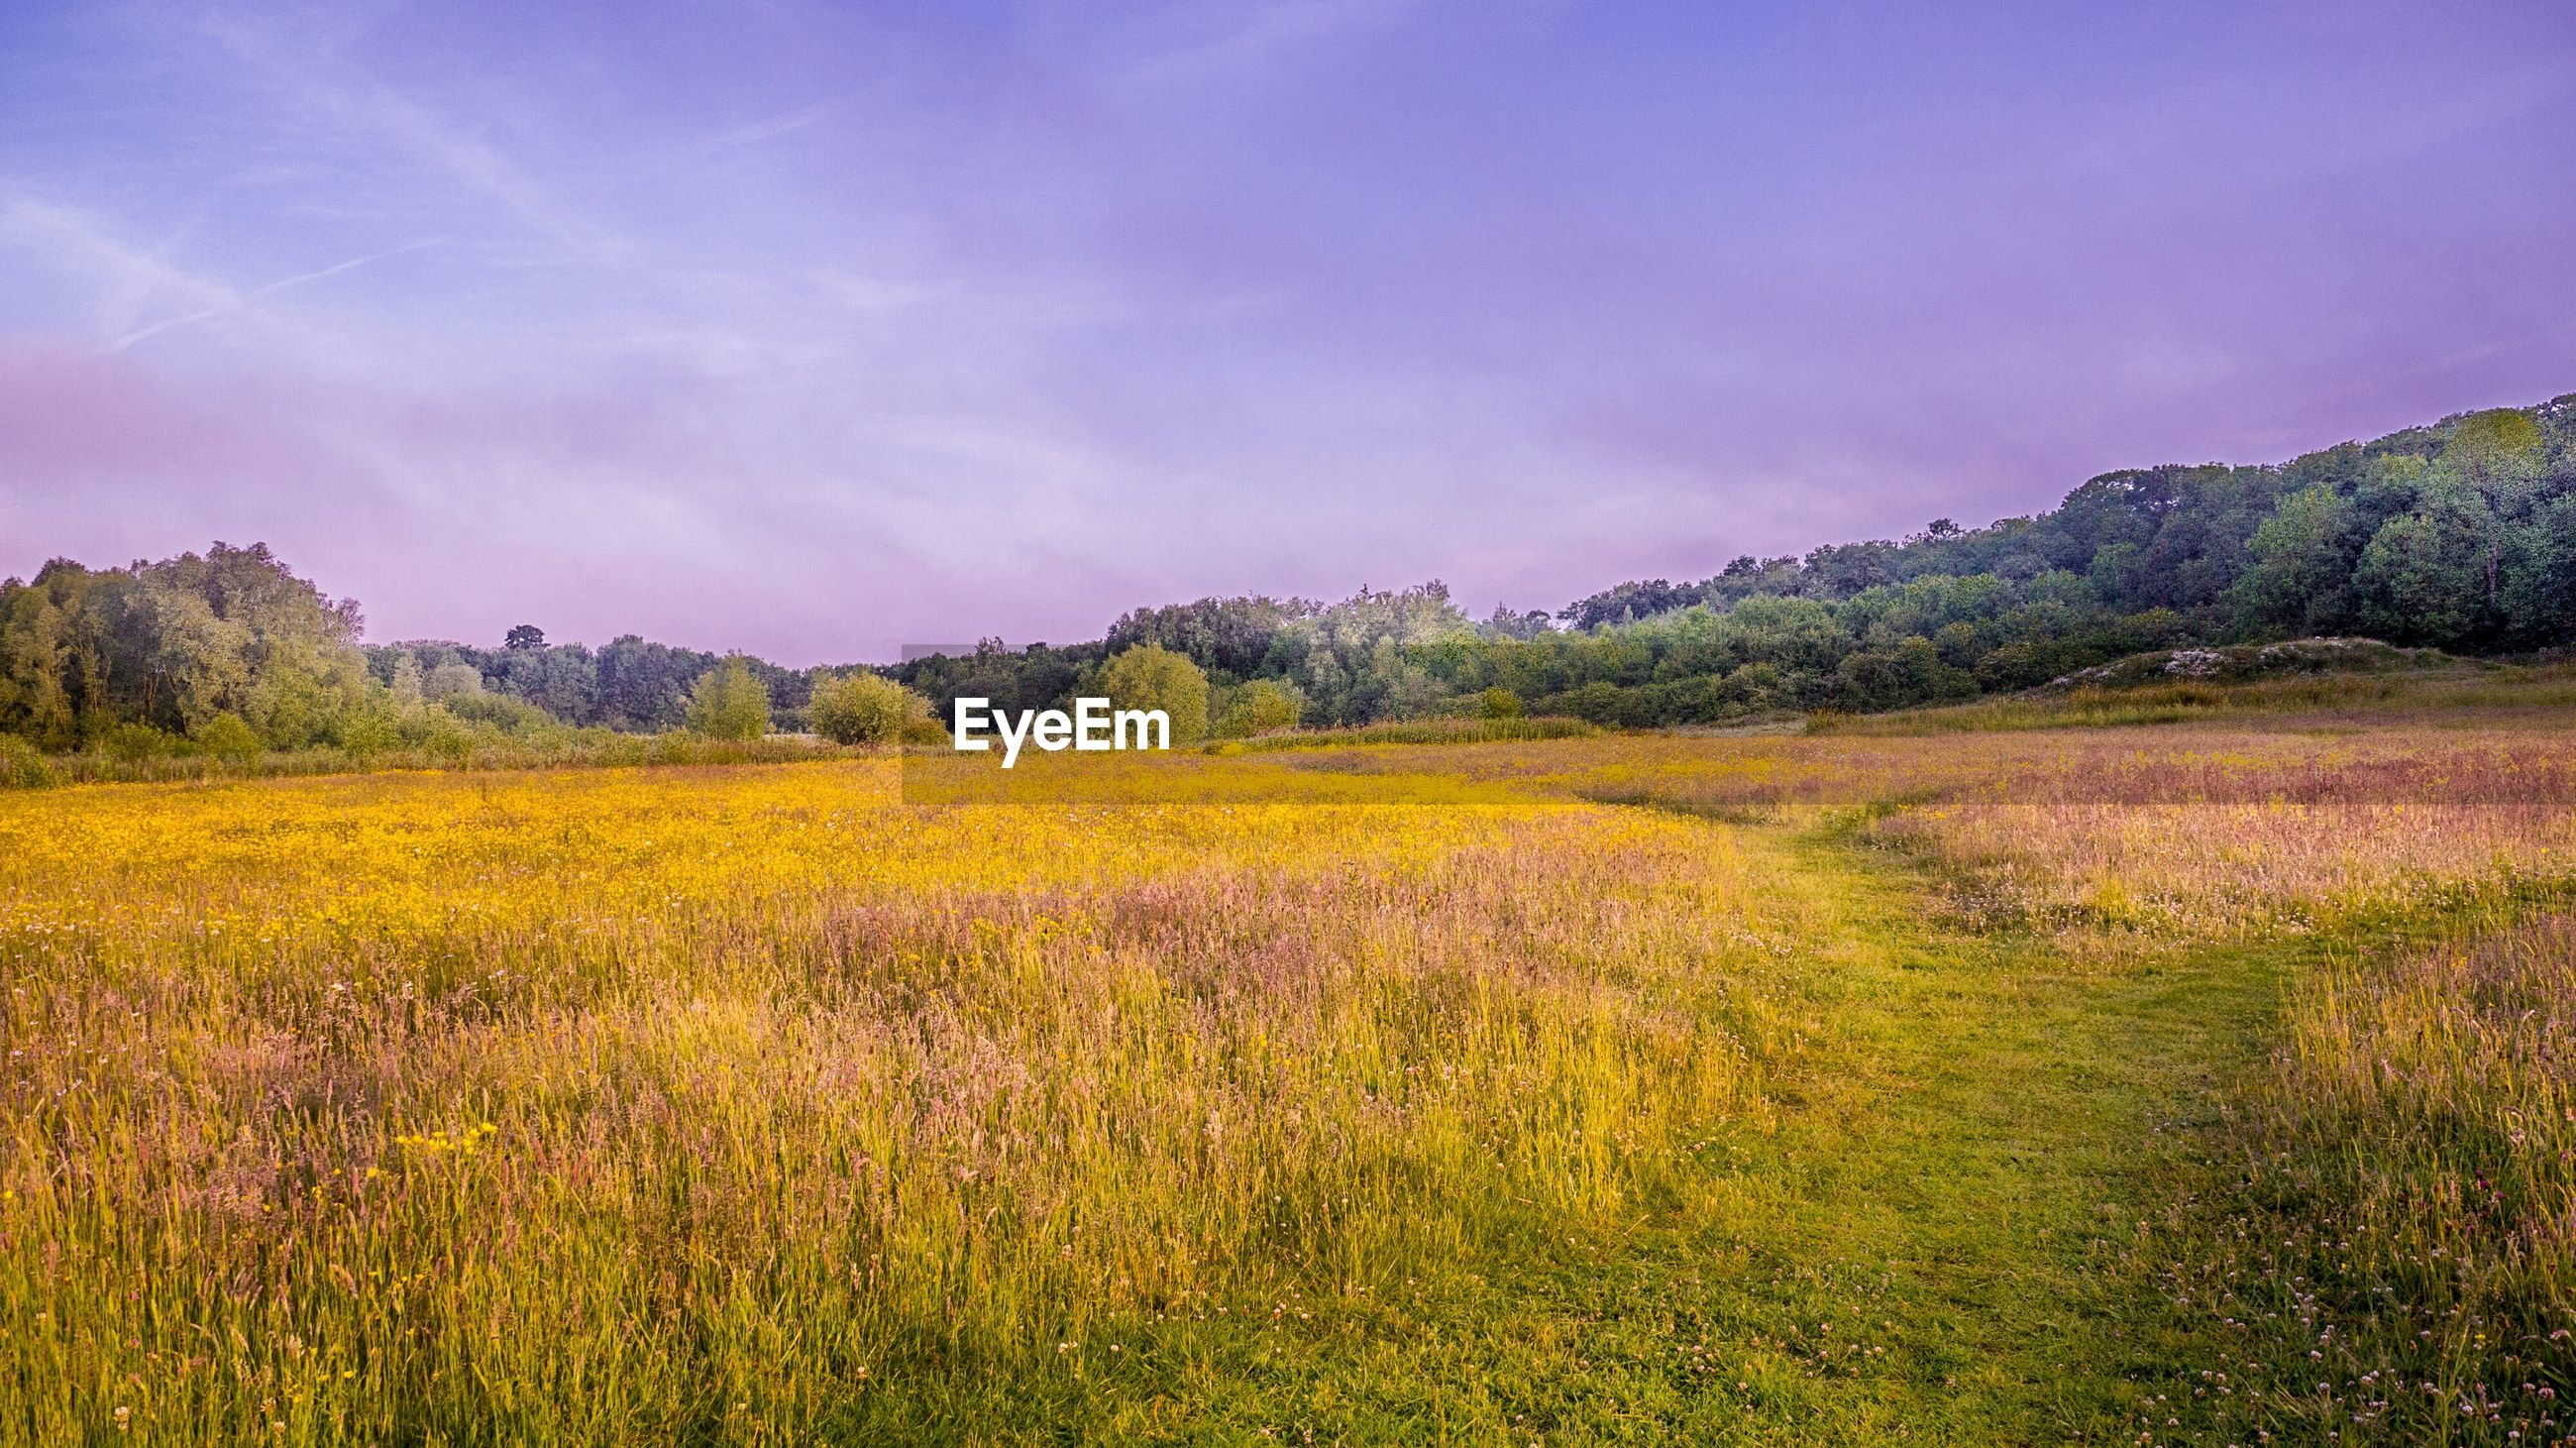 Scenic view of field against sky